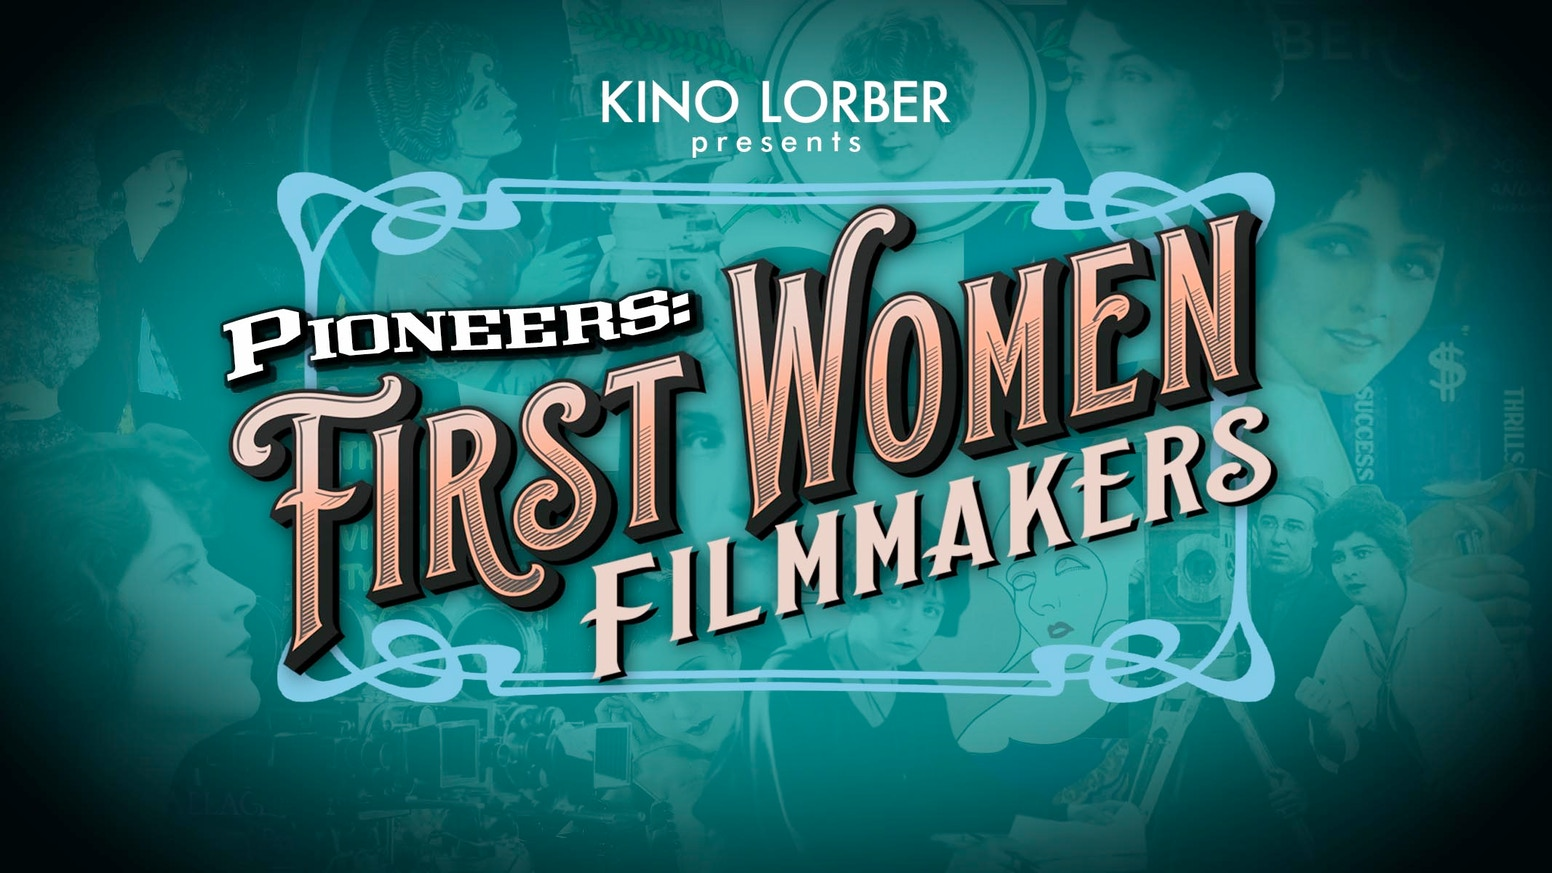 PIONEERS: FIRST WOMEN FILMMAKERS by Kino Lorber — Kickstarter